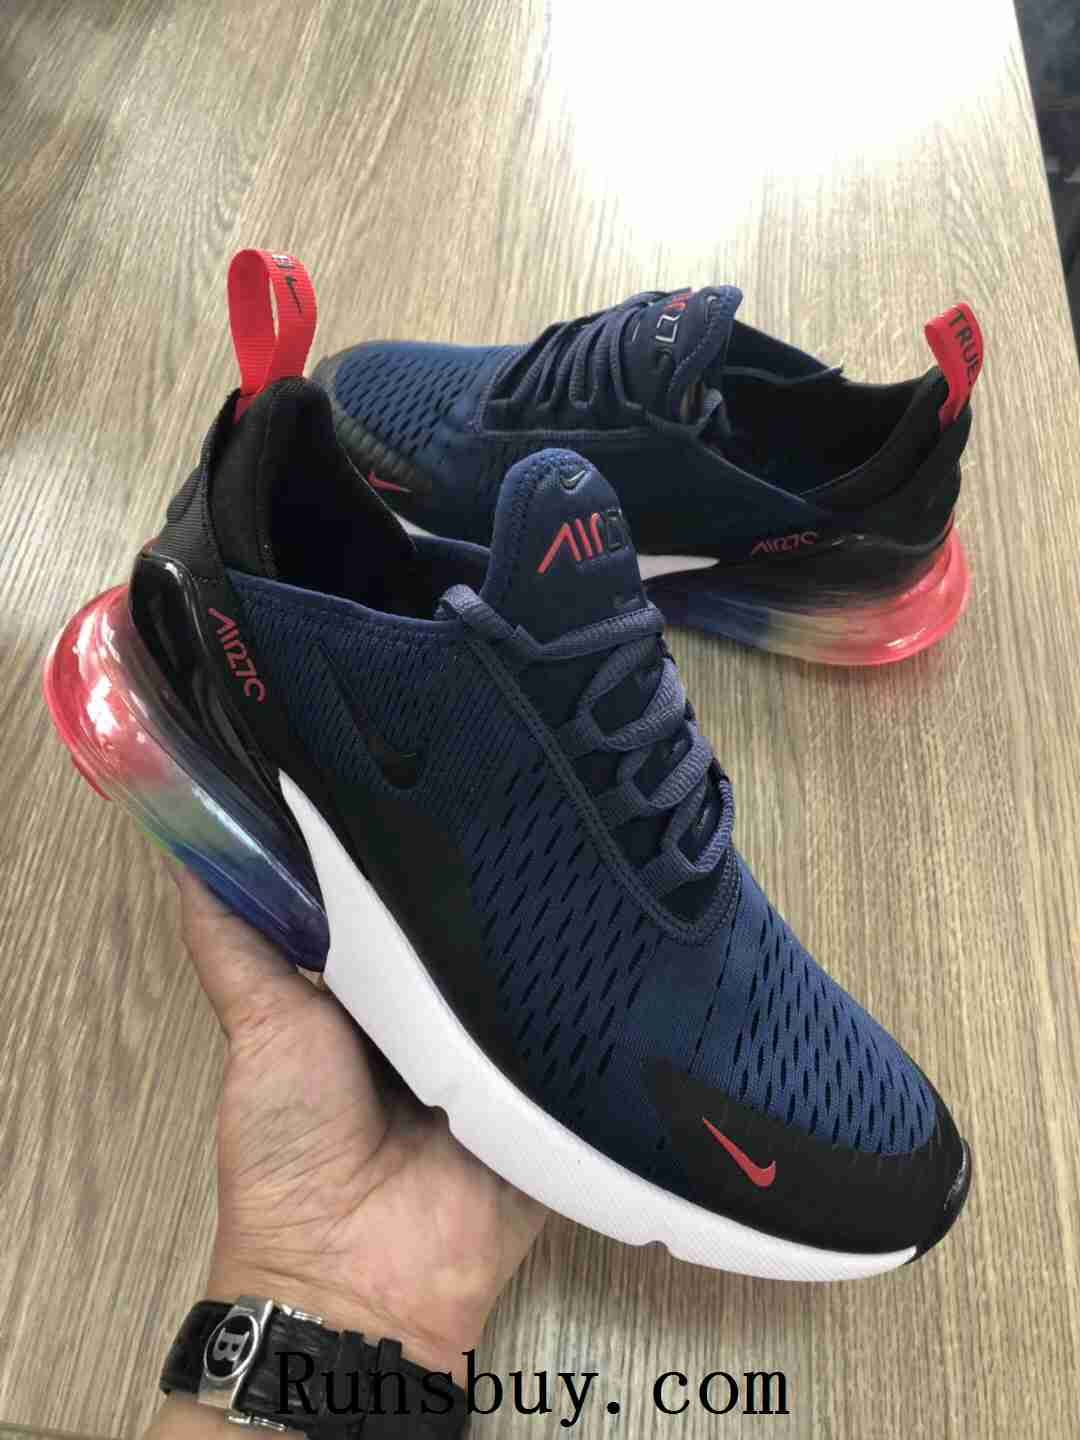 new styles dadd5 1e8f0 Nike Air Max 270 Betrue Blue Black Rainbow Women Men Running Shoes